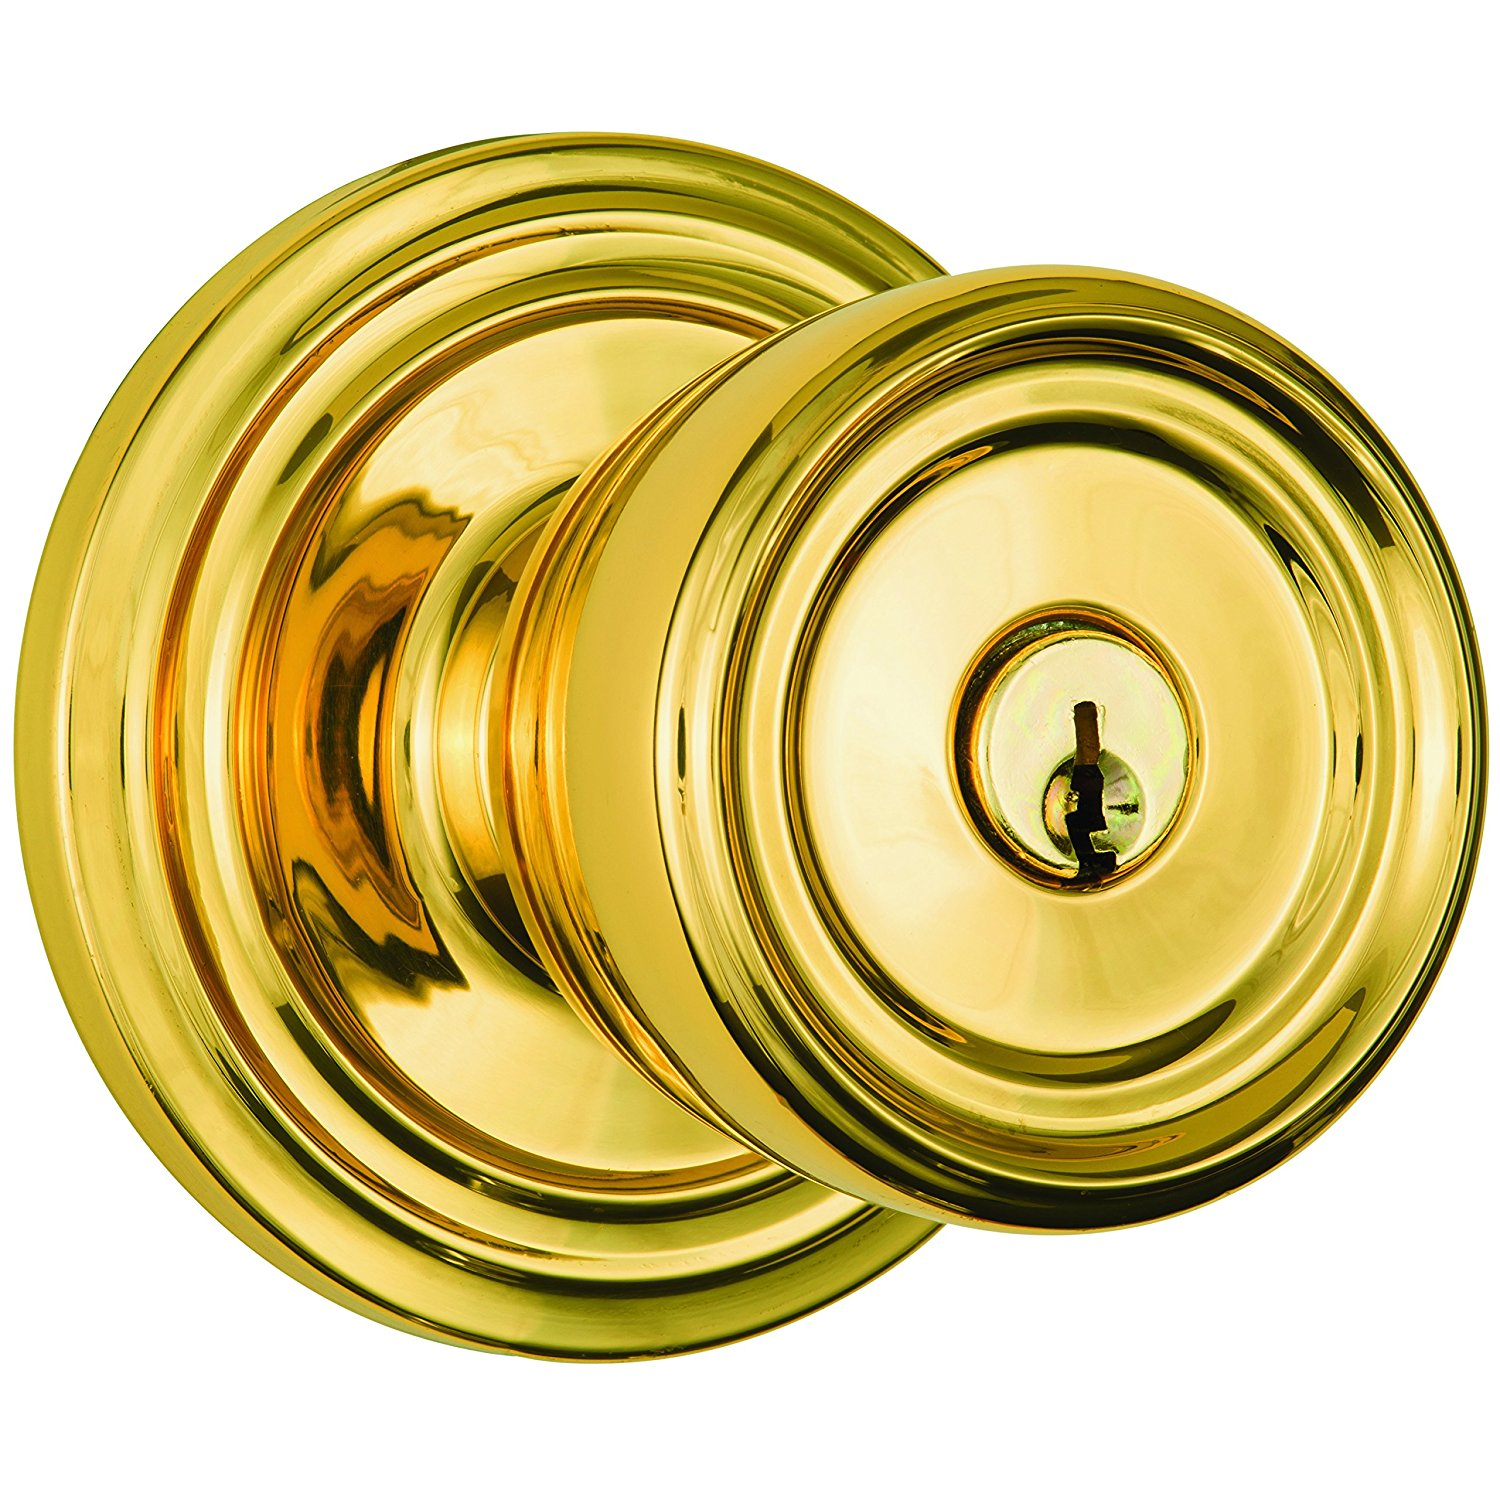 Get Quotations · Brinks Home Security Push Pull Rotate Door Locks 23005 105  Barrett Entry Knob